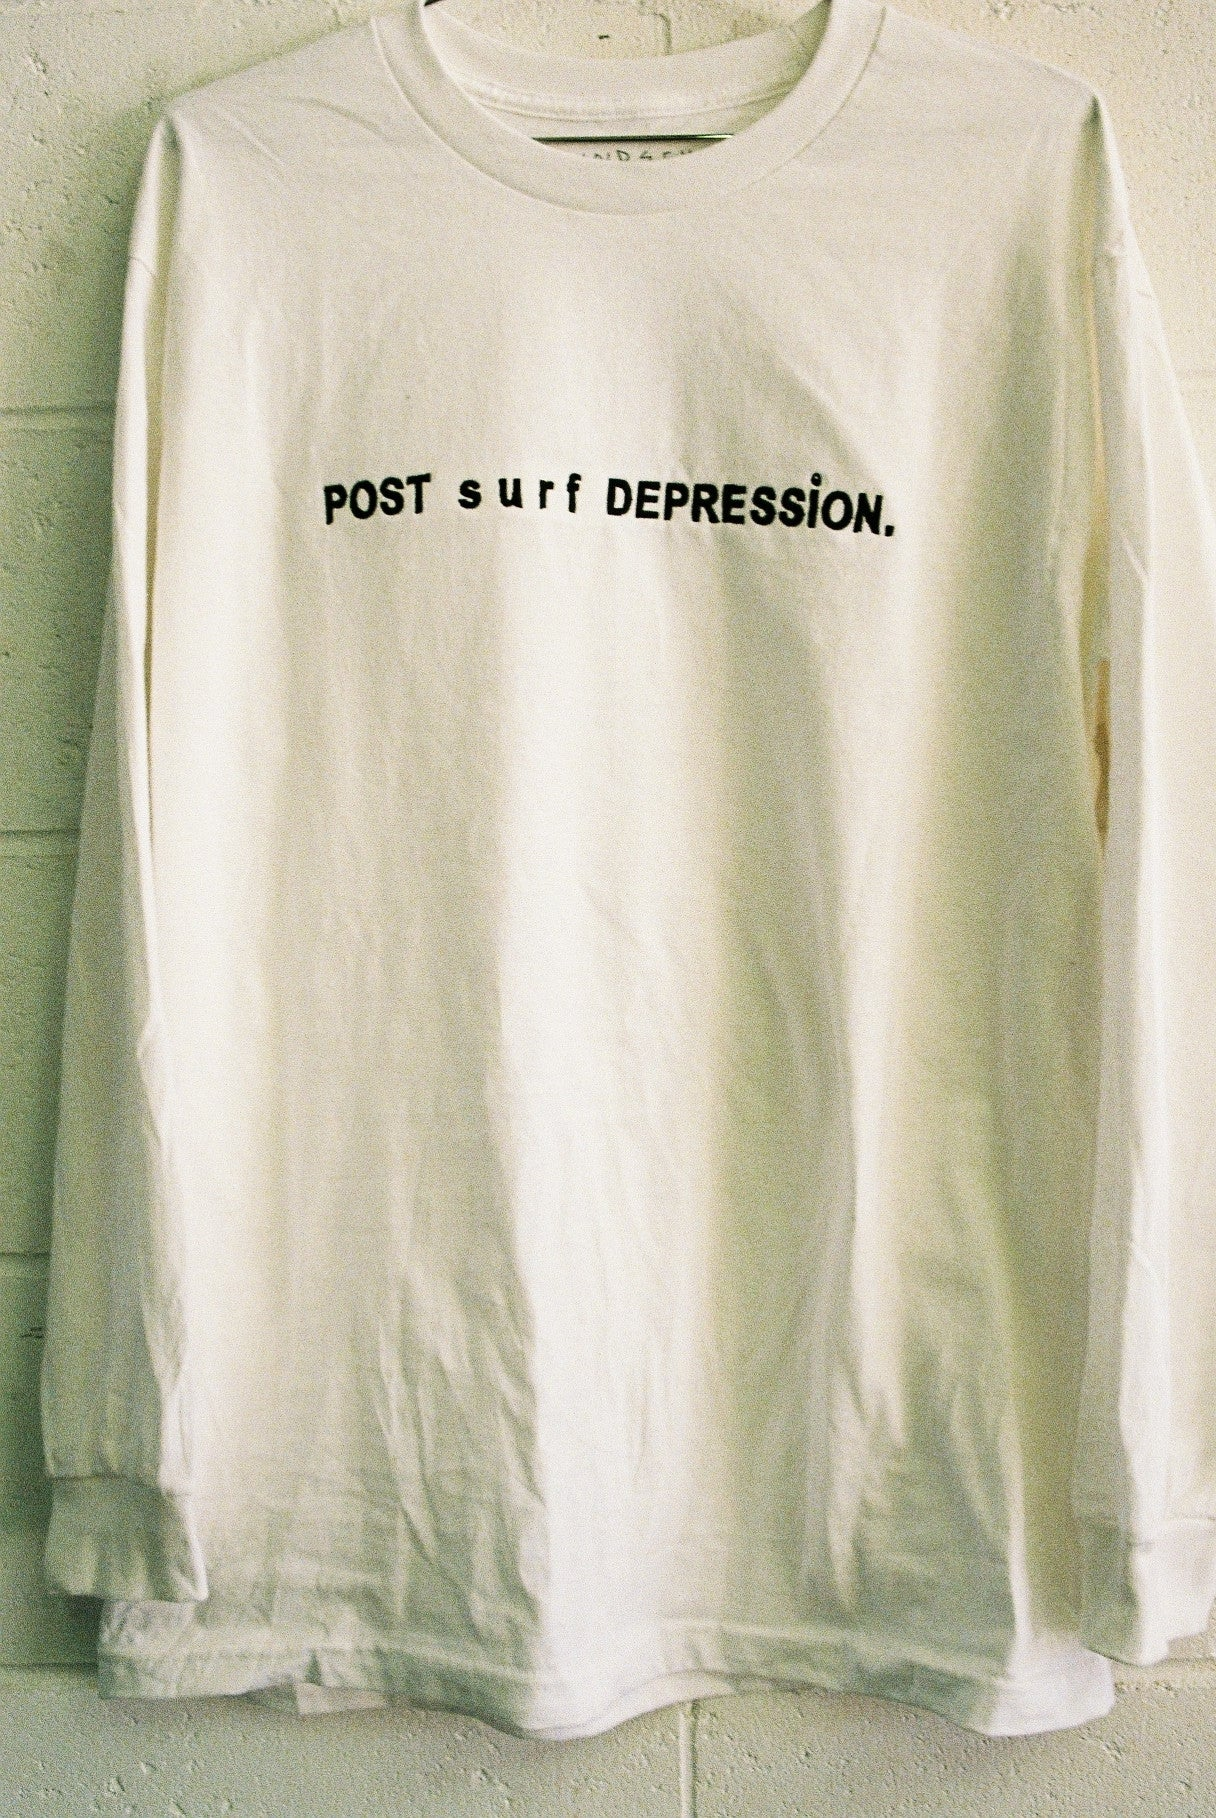 POST SURF DEPRESSION L/S tee / white